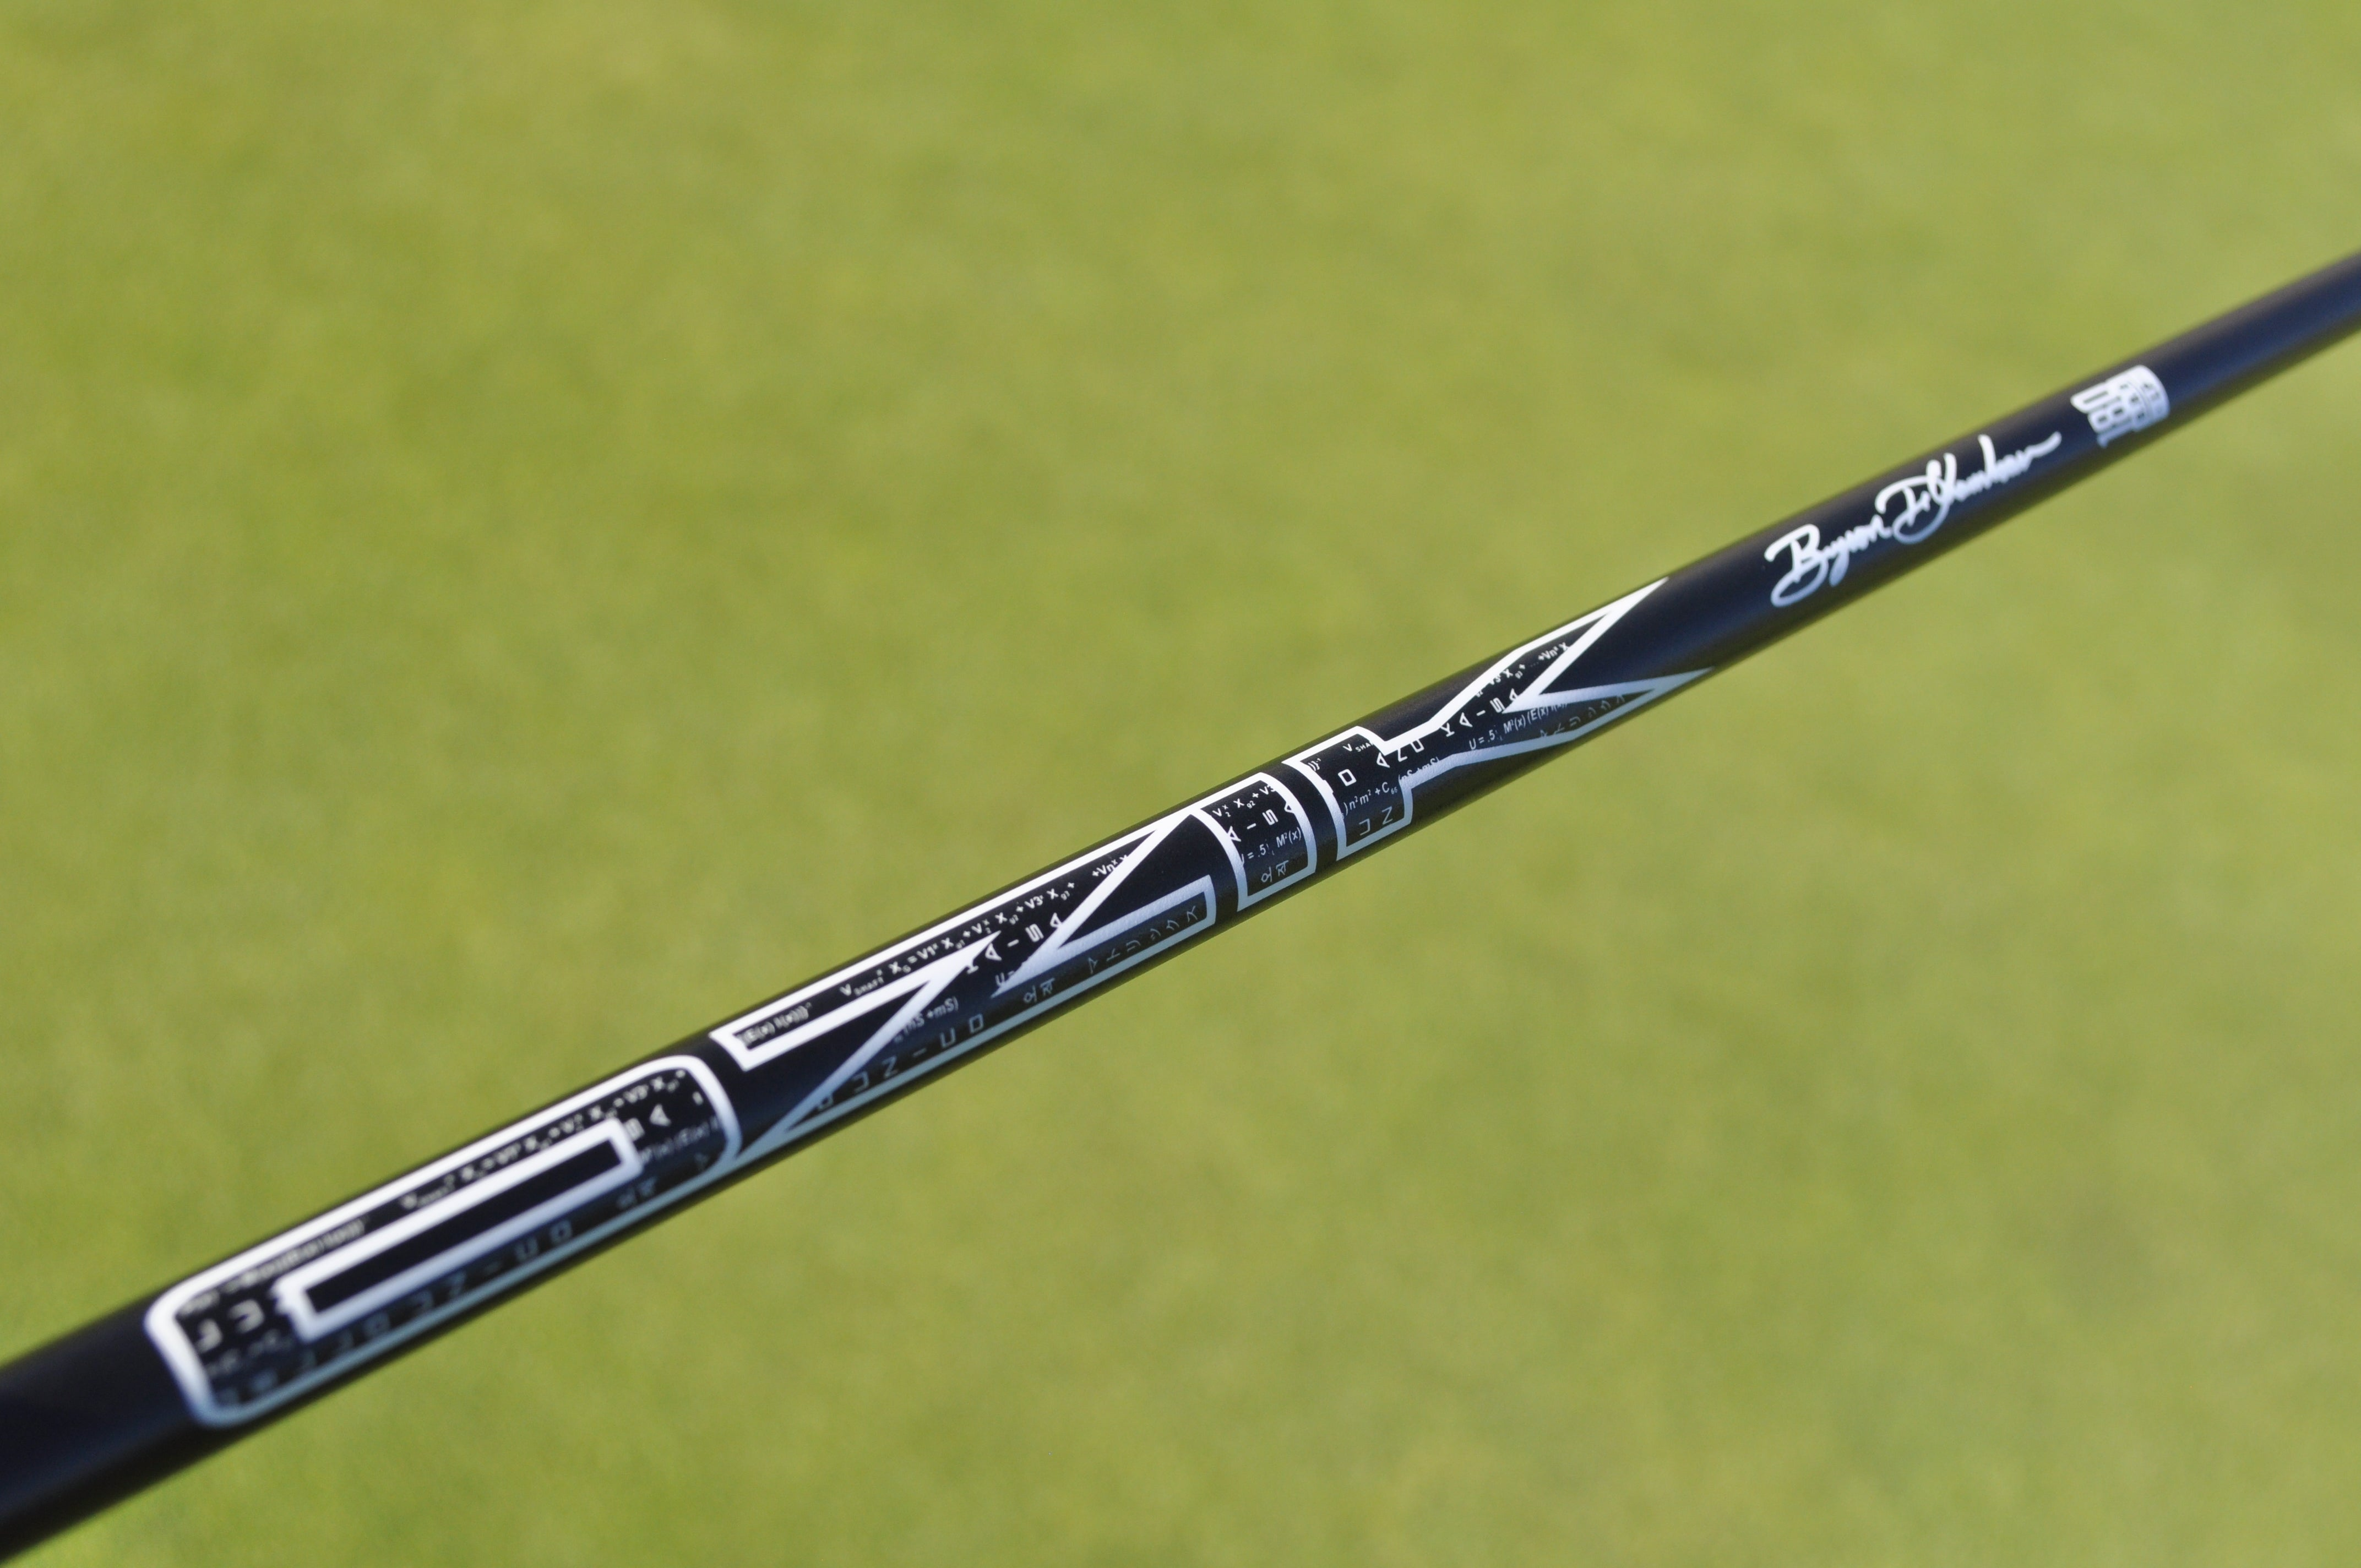 LA Golf created a Matrix signature putter shaft for Bryson DeChambeau.